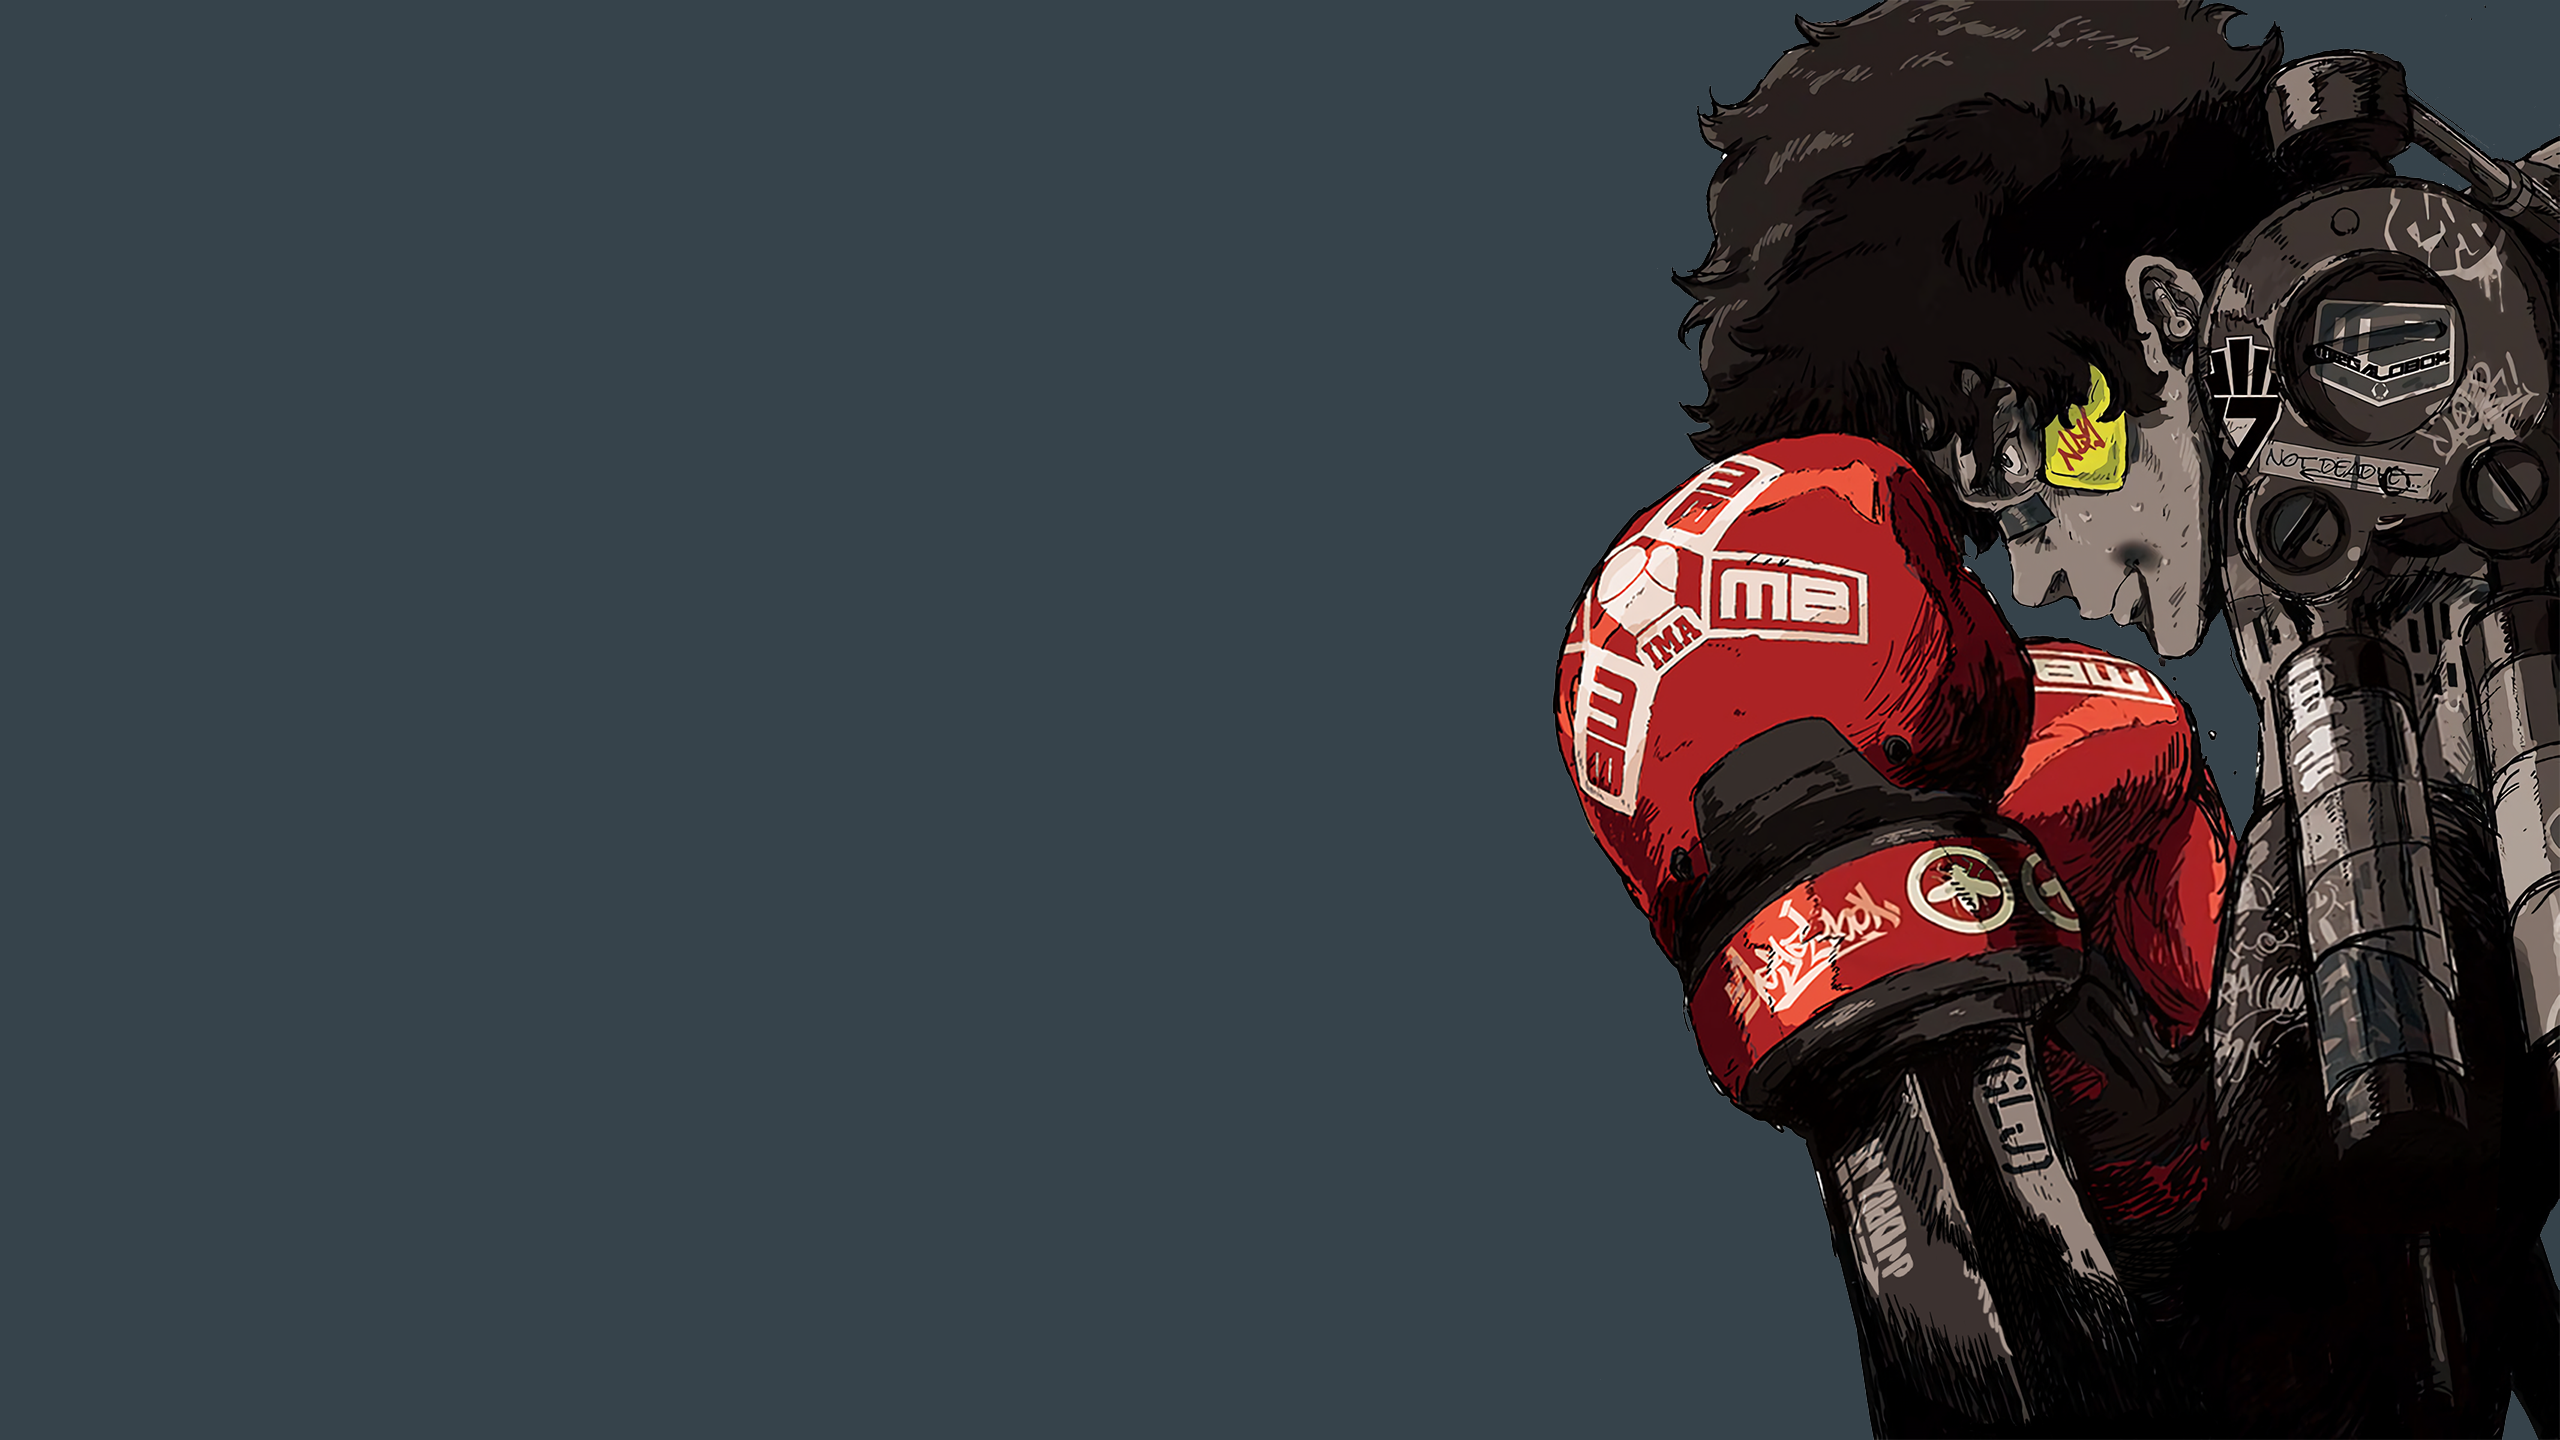 Megalo Box Wallpapers - Top Free Megalo Box Backgrounds ...